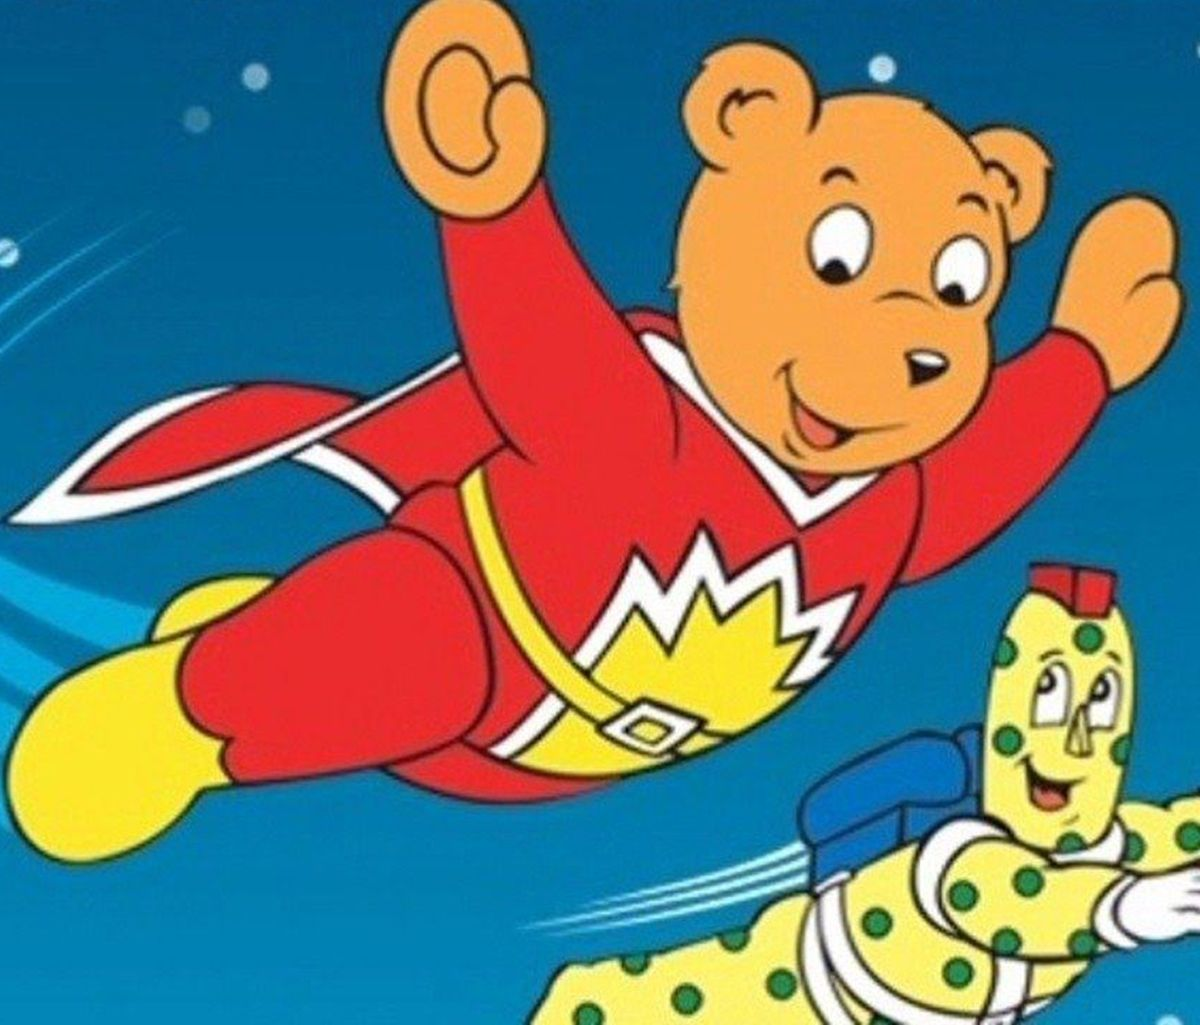 9 15 Another 16 Facts About 80s Cartoons That Will Ruin Your Childhood